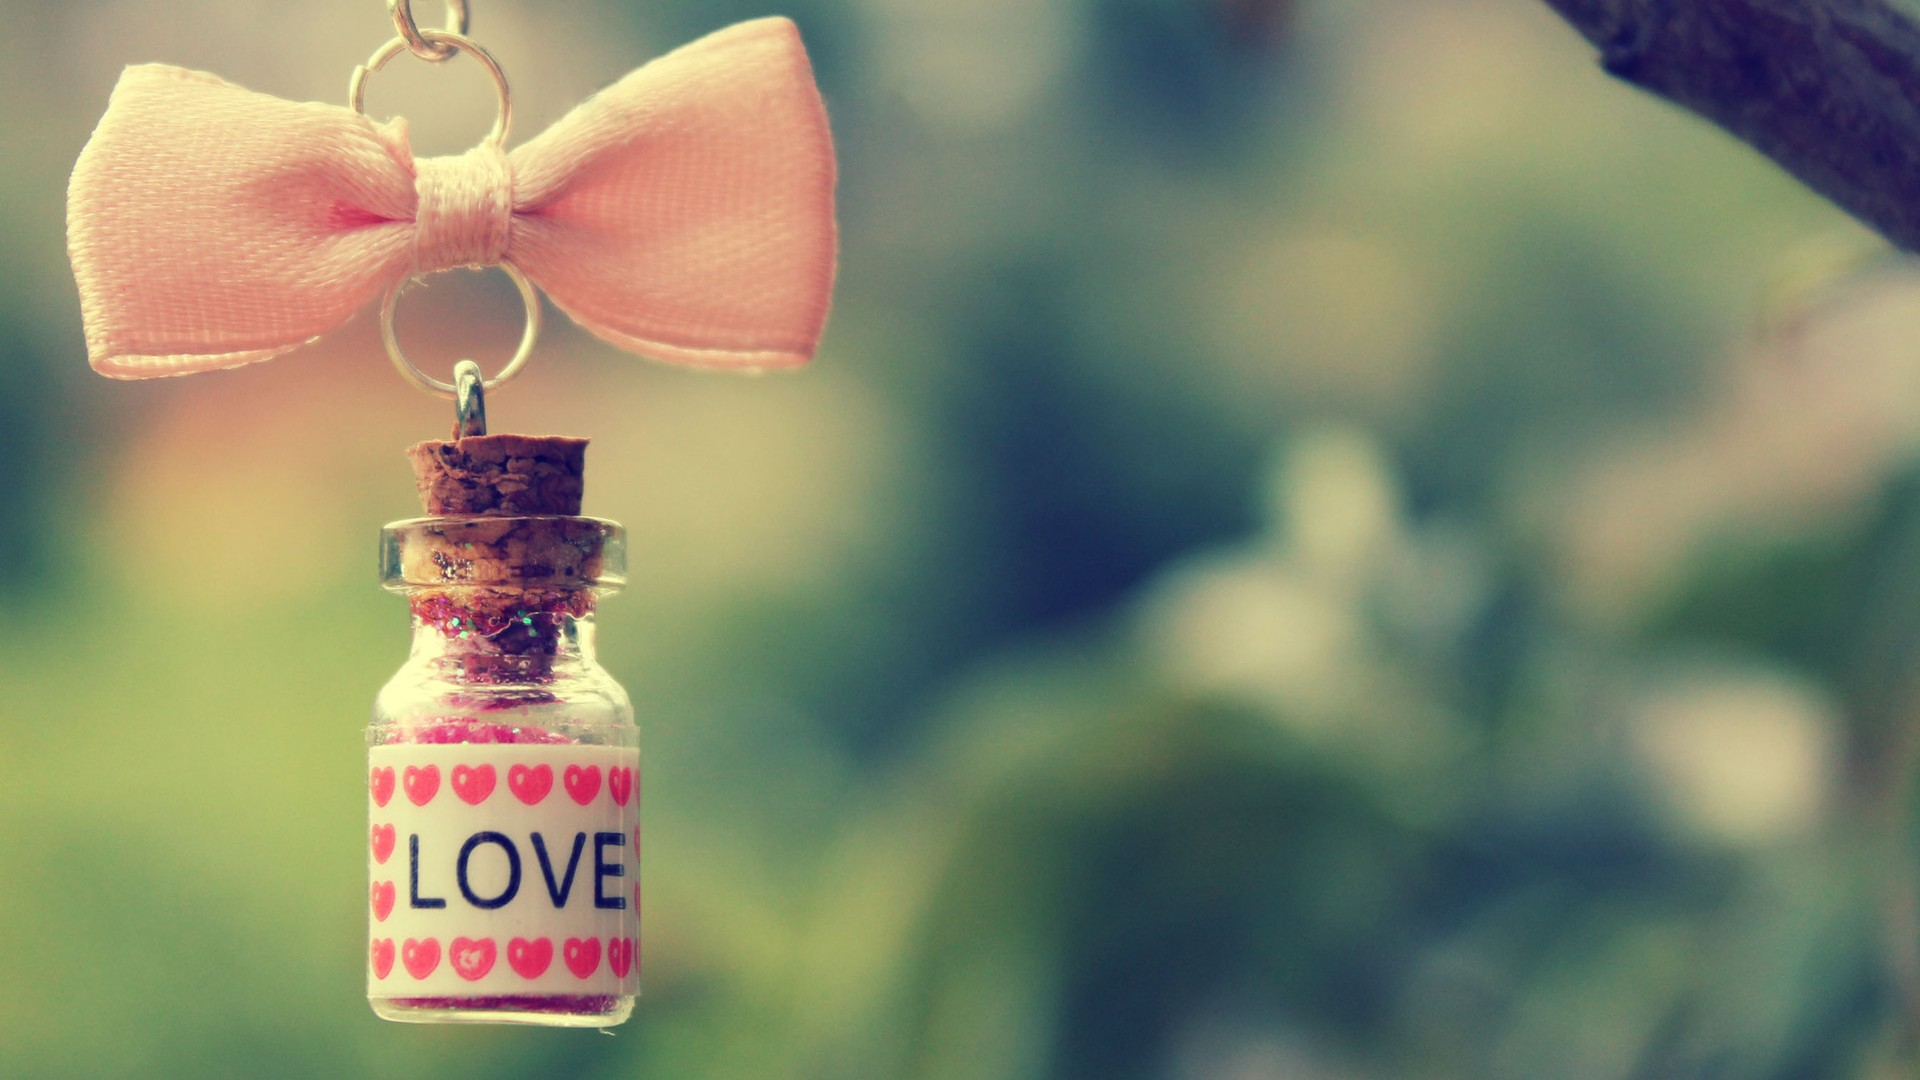 Cute Love Backgrounds for Desktop Download HD Wallpapers 1920x1080